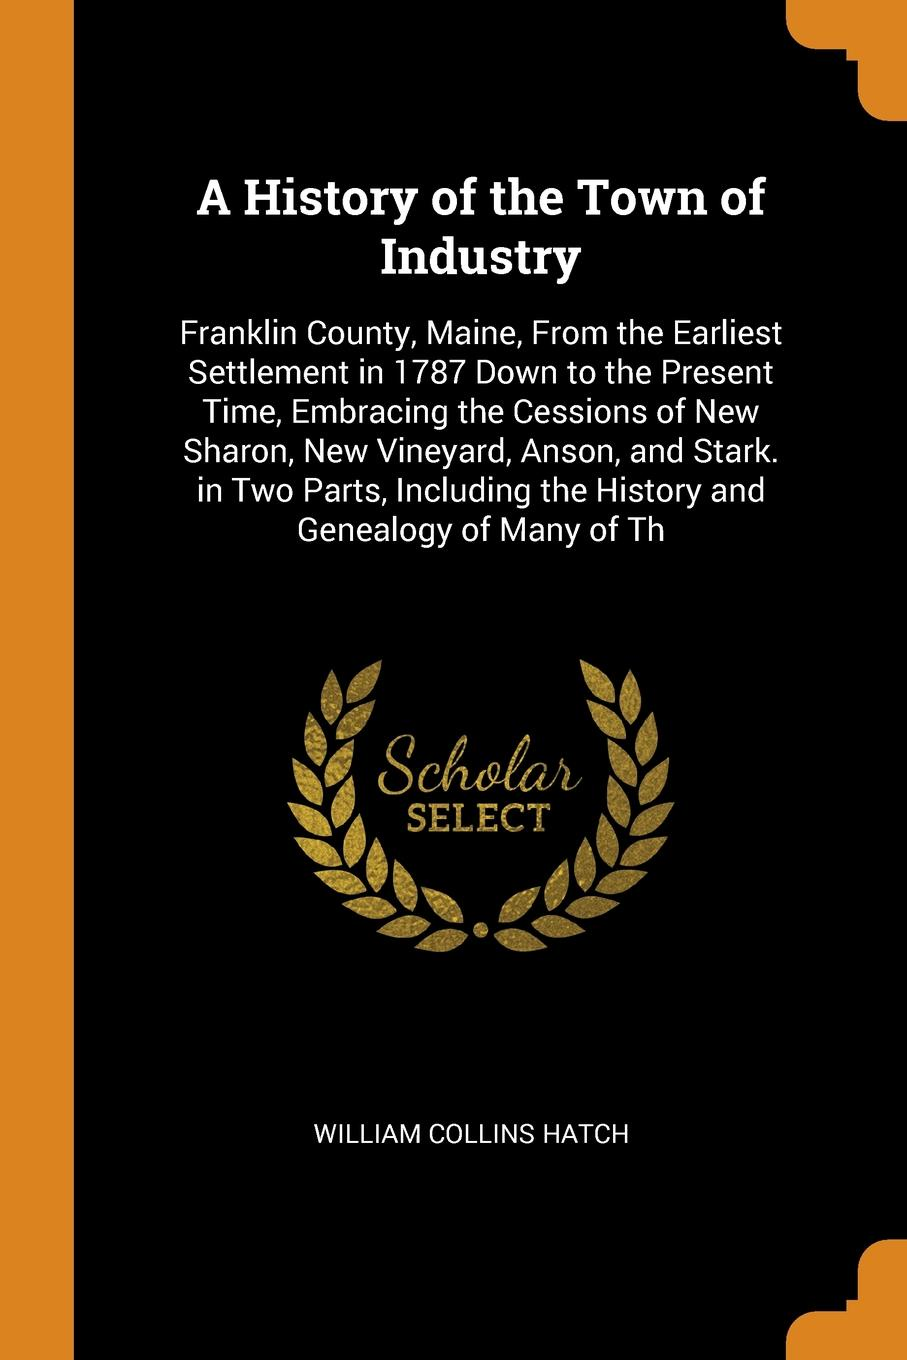 William Collins Hatch A History of the Town of Industry. Franklin County, Maine, From the Earliest Settlement in 1787 Down to the Present Time, Embracing the Cessions of New Sharon, New Vineyard, Anson, and Stark. in Two Parts, Including the History and Genealogy of Ma...